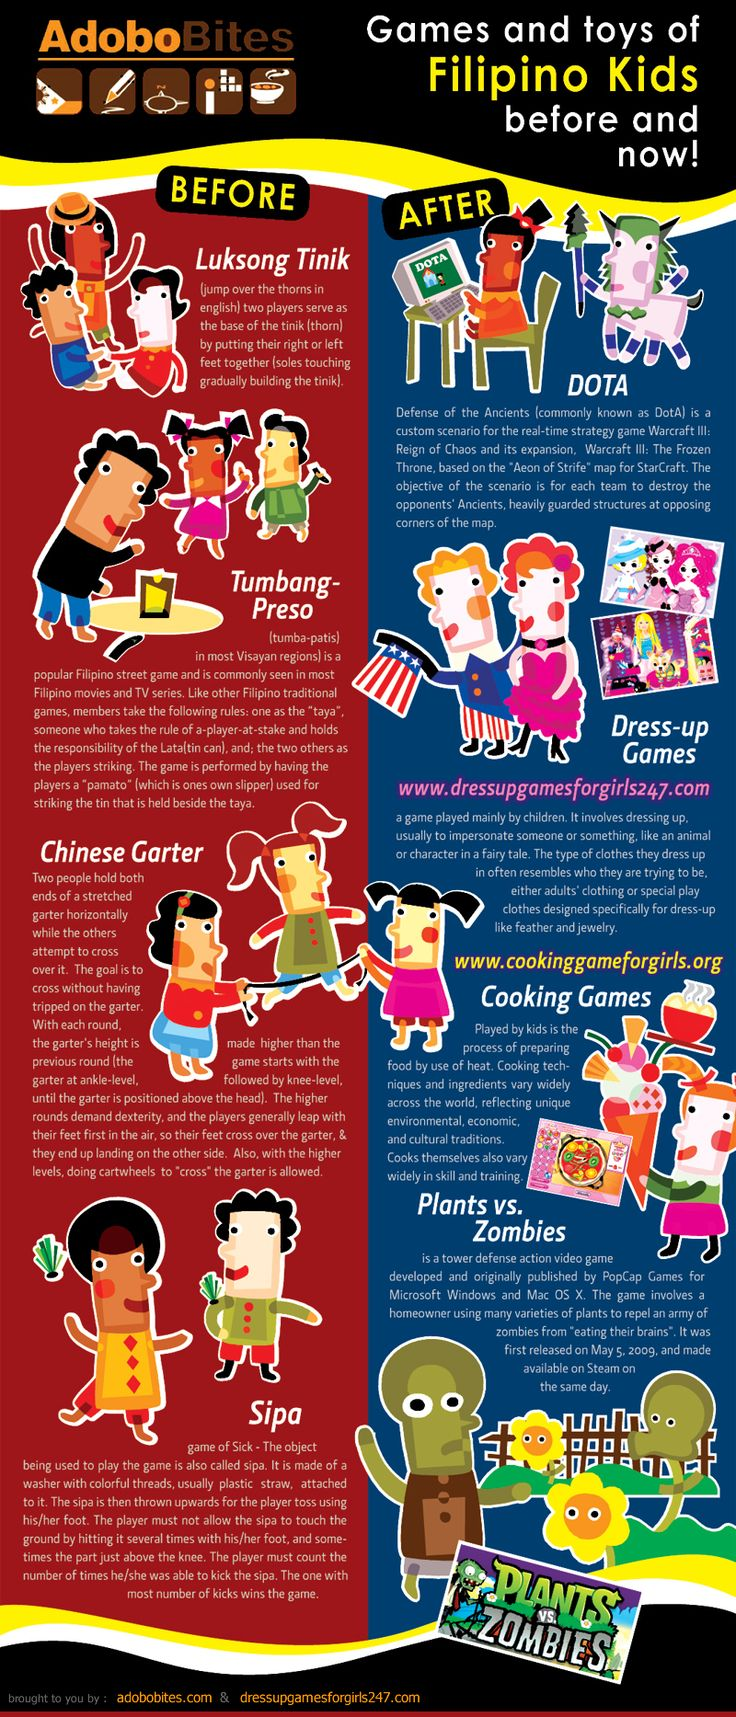 Games and Toys Of Filipino Kids: Then and Now